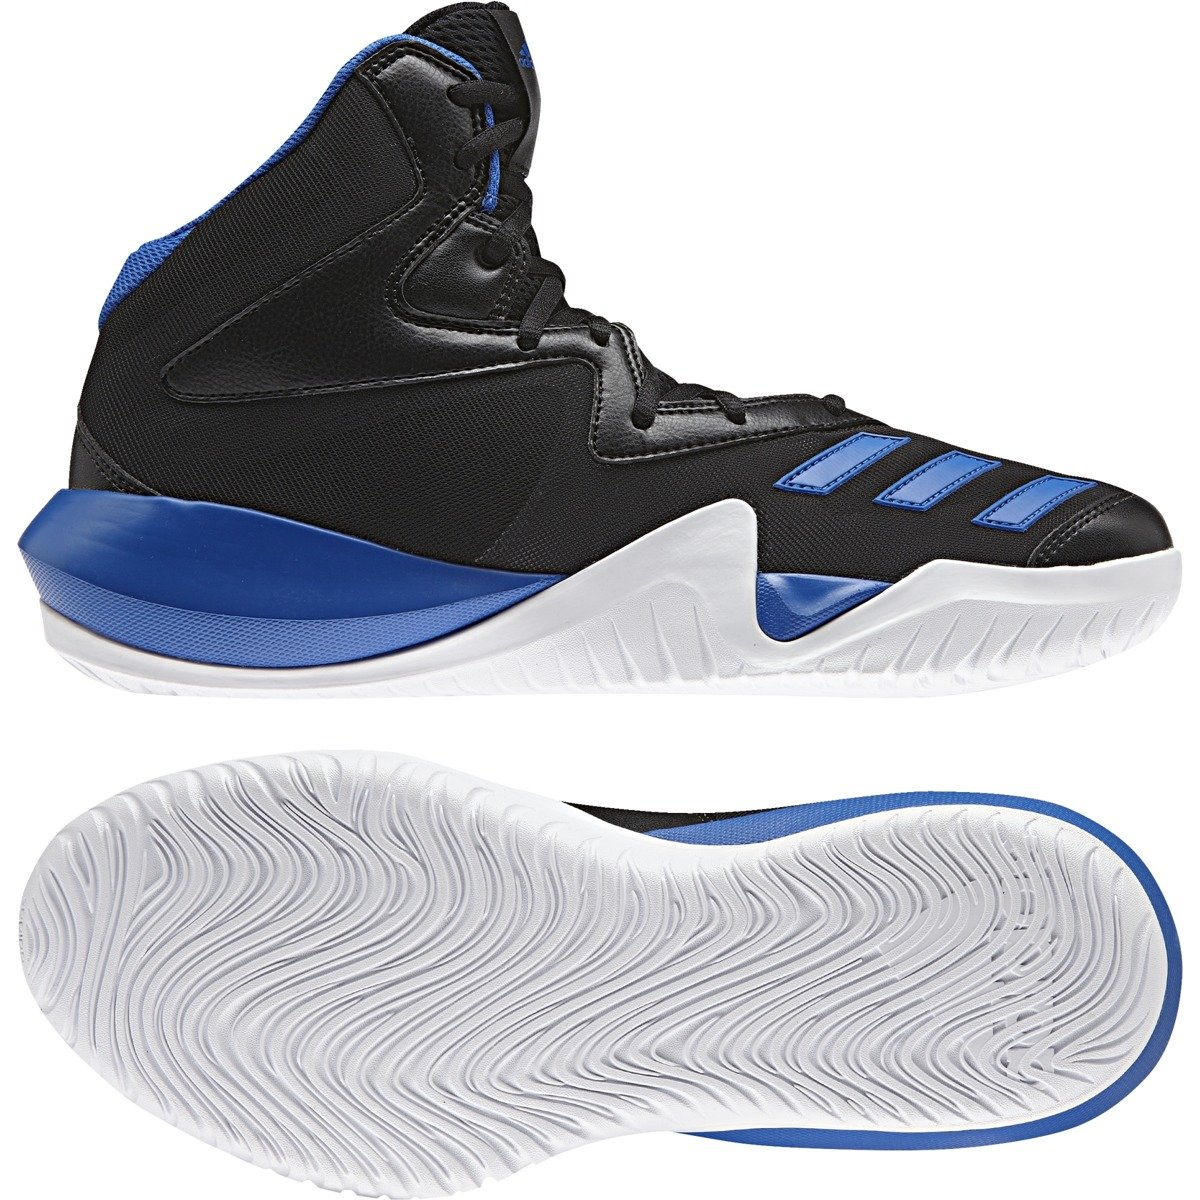 Adidas Basketball Shoes Price List